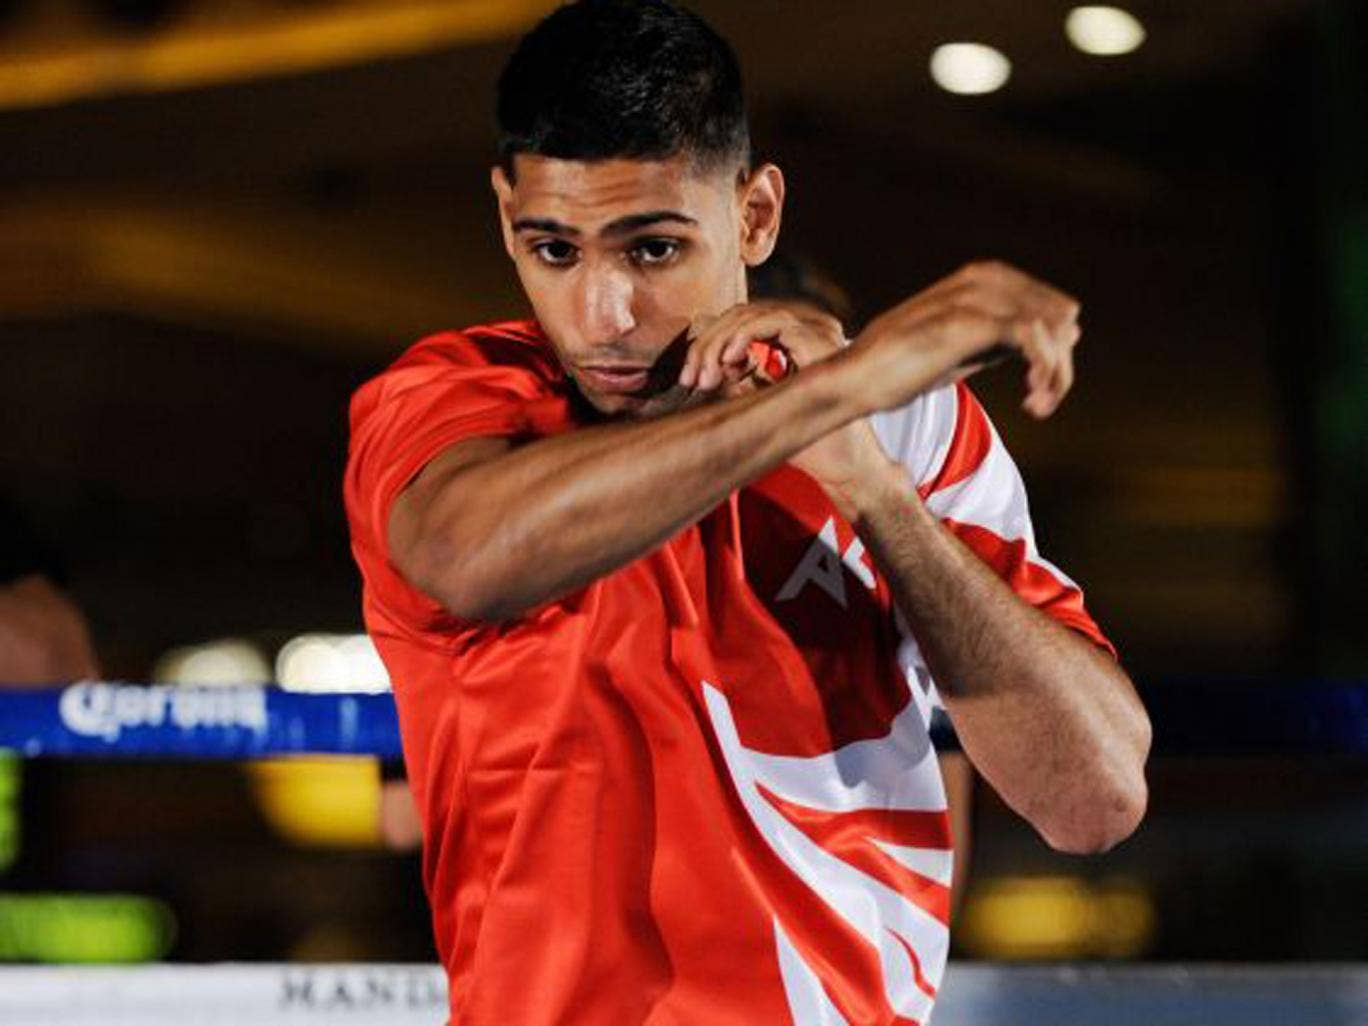 Amir Khan has been defeated three times as a pro boxer but hopes for a fresh start with new trainer Virgil Hunter